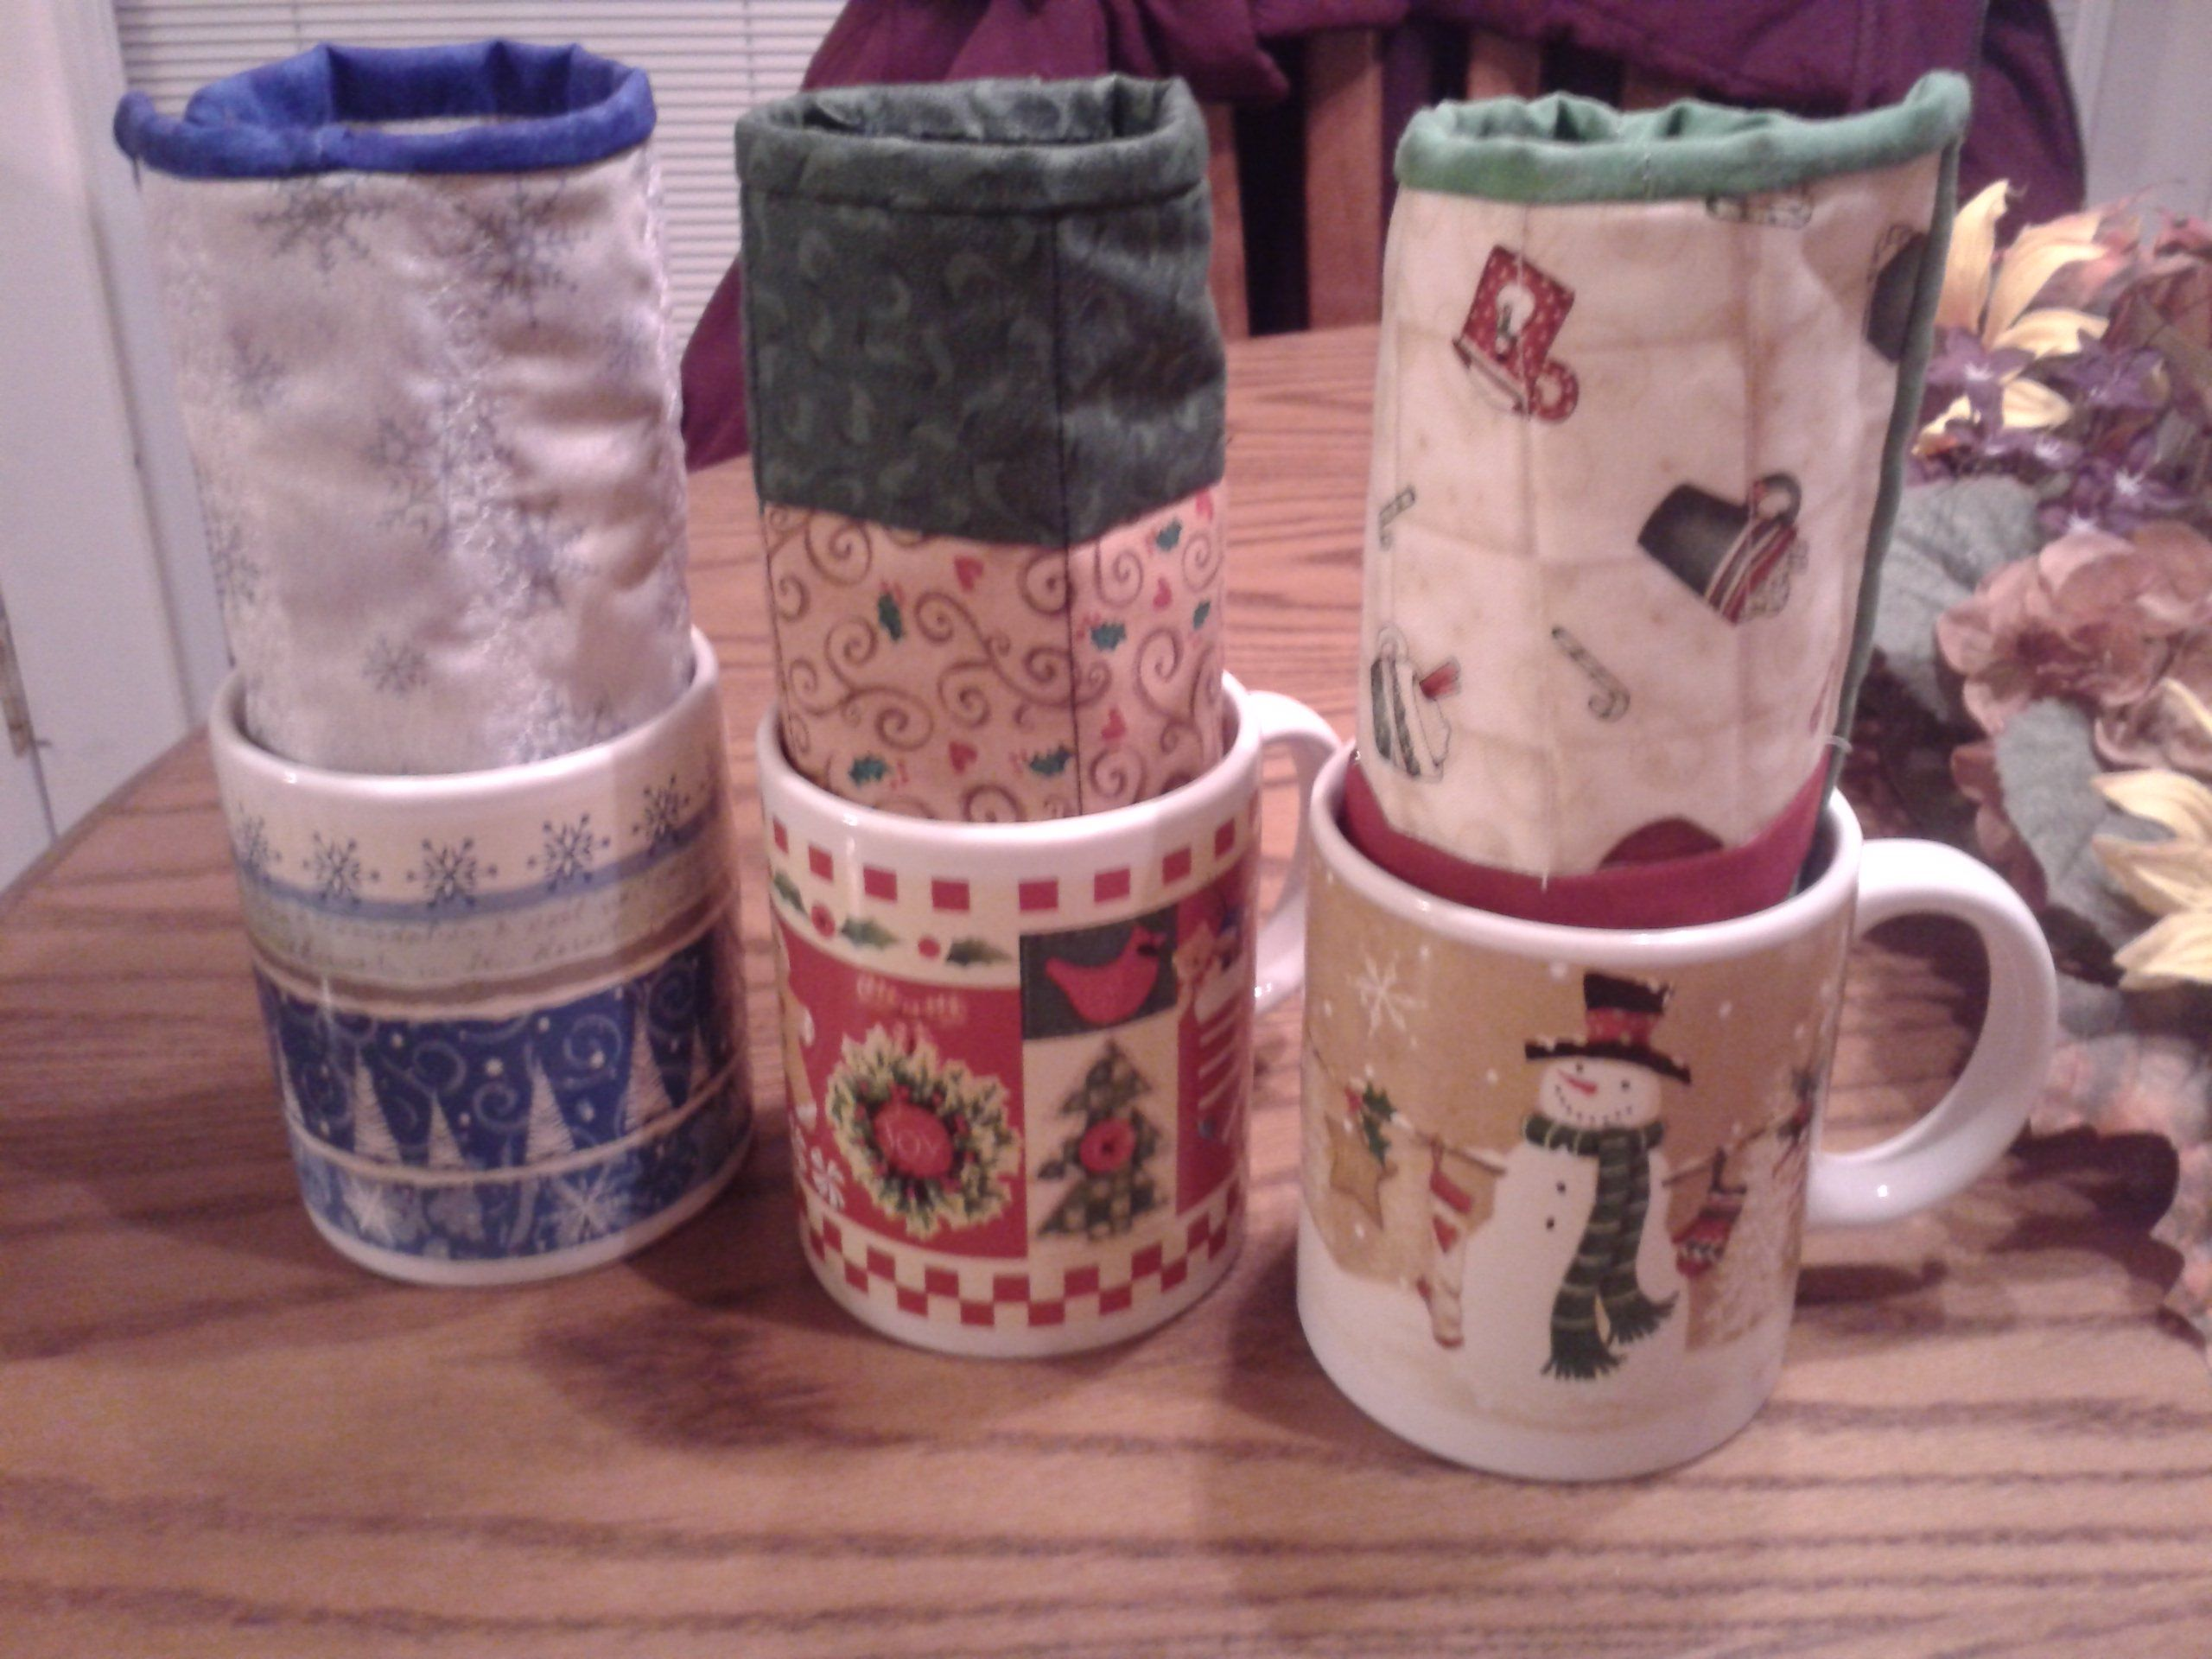 Mug Rugs with a cute mug for present, maybe filled with candy.